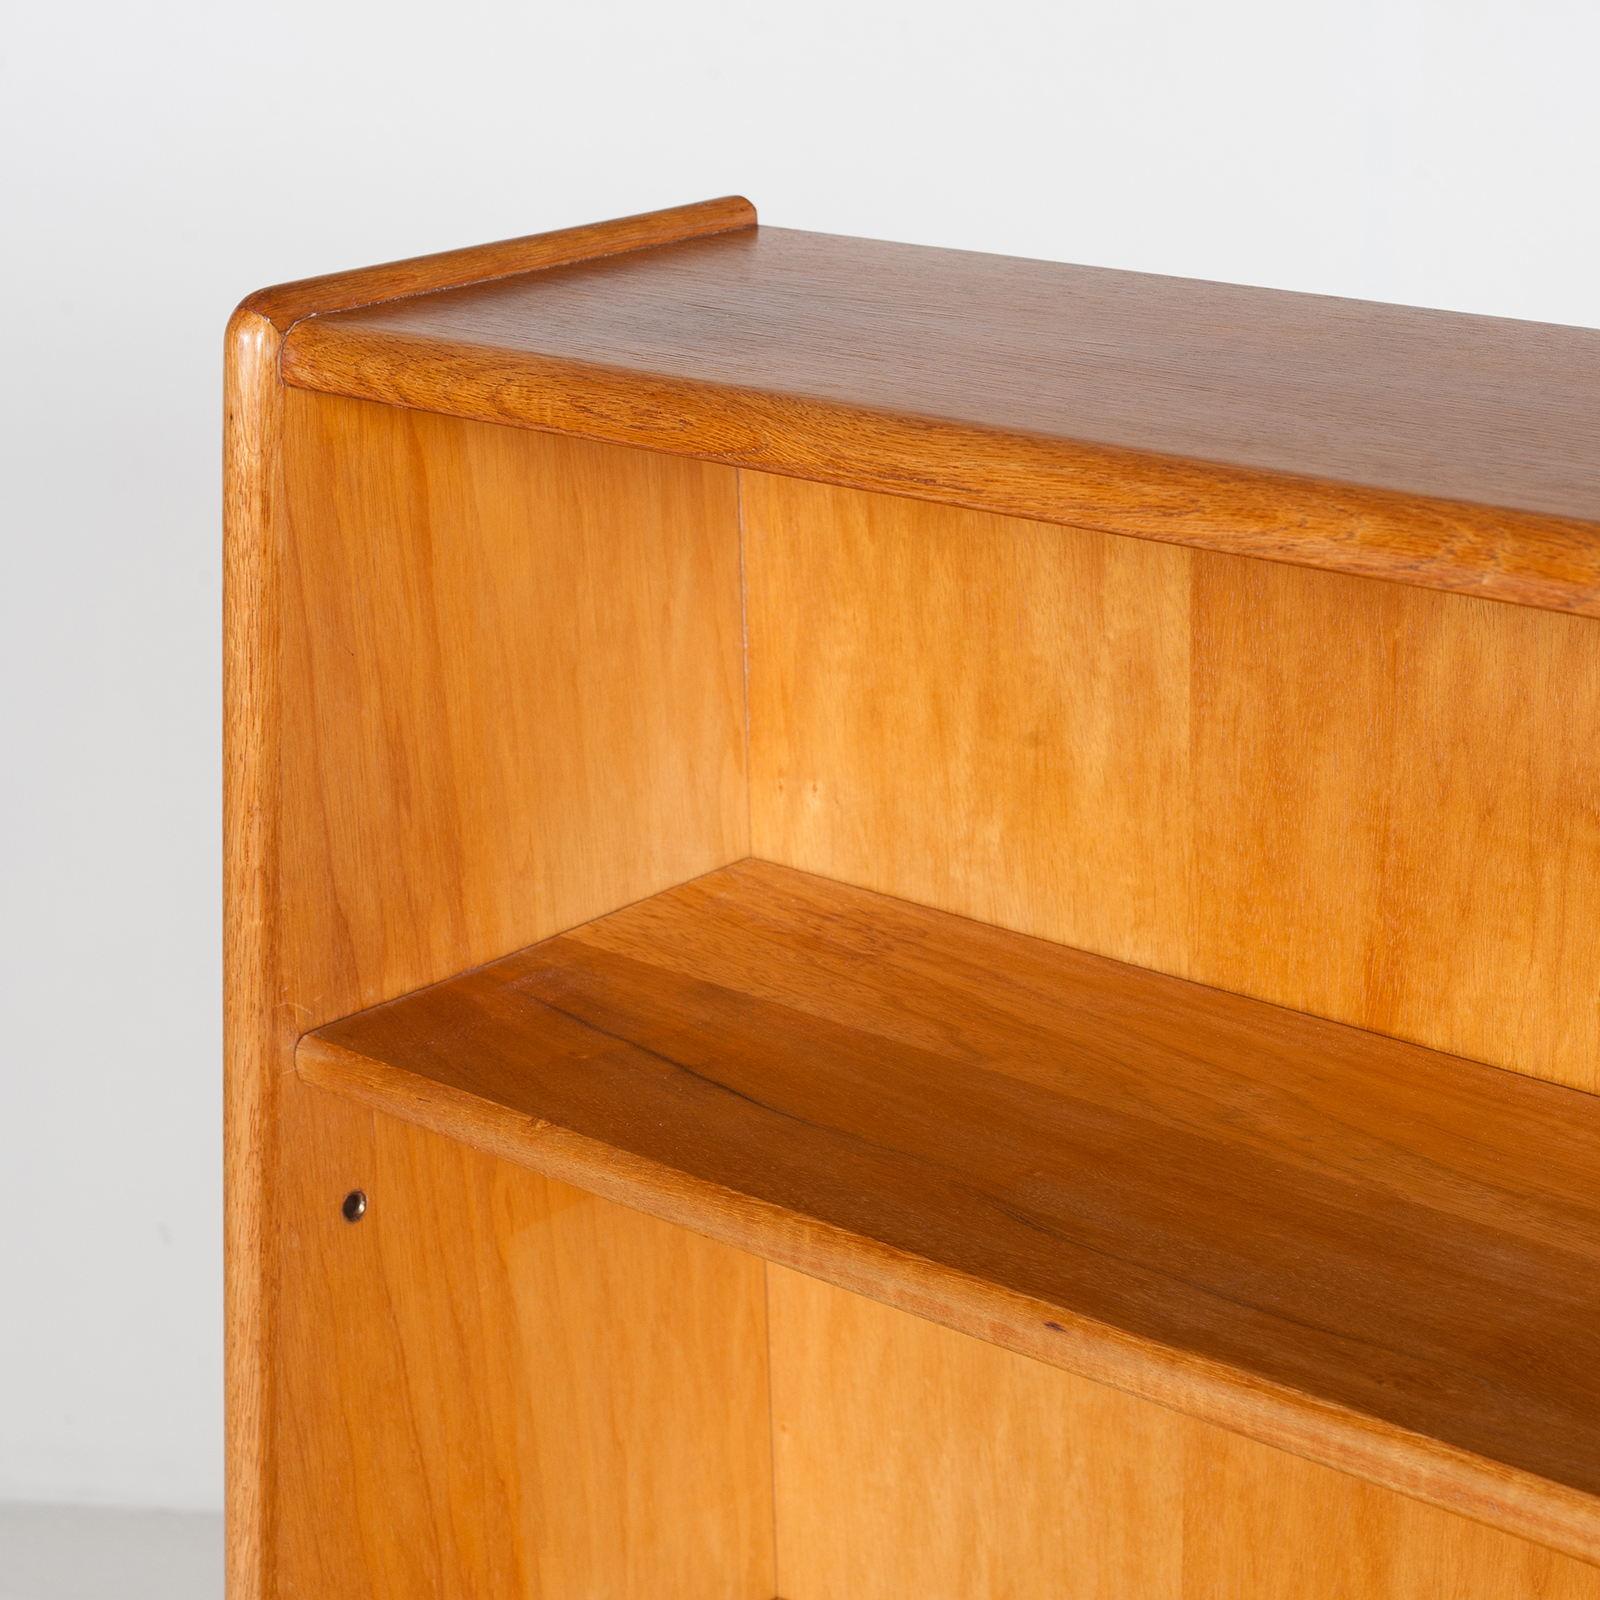 Model Be 03 Oak Series Bookcase By Cees Braakman For Pastoe, 1950s, The Netherlands 39